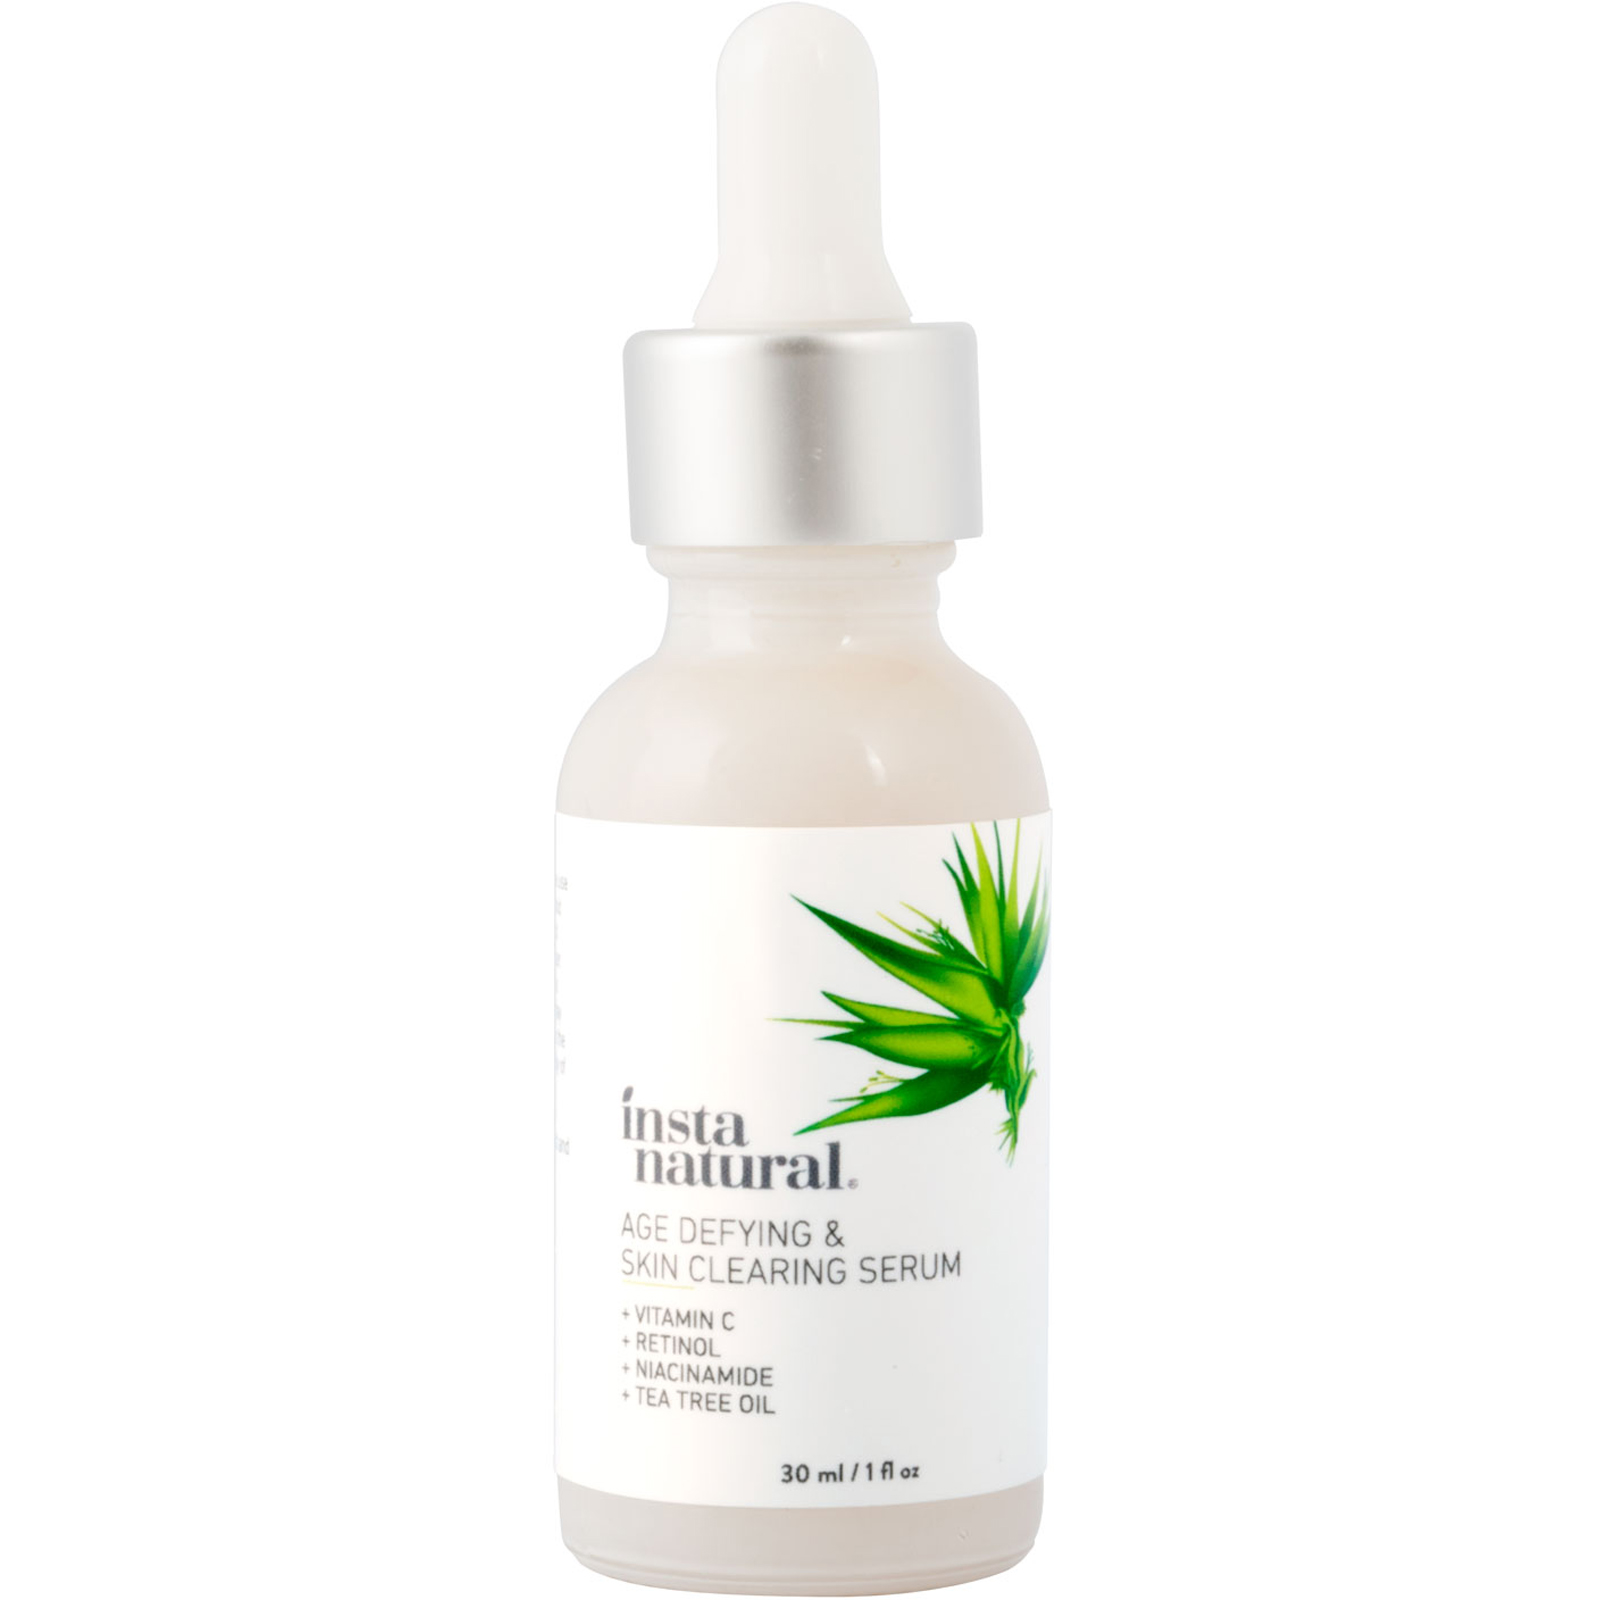 InstaNatural, Day & Night Skin Duo, Age Defying Serum Kit, 2 Bottles, 1 oz (30 ml) Each(pack of 2) Babor - Skinovage PX Advanced Biogen Mimical Control Cream (For Tired Skin in need of Regeneration) -50ml/1.7oz